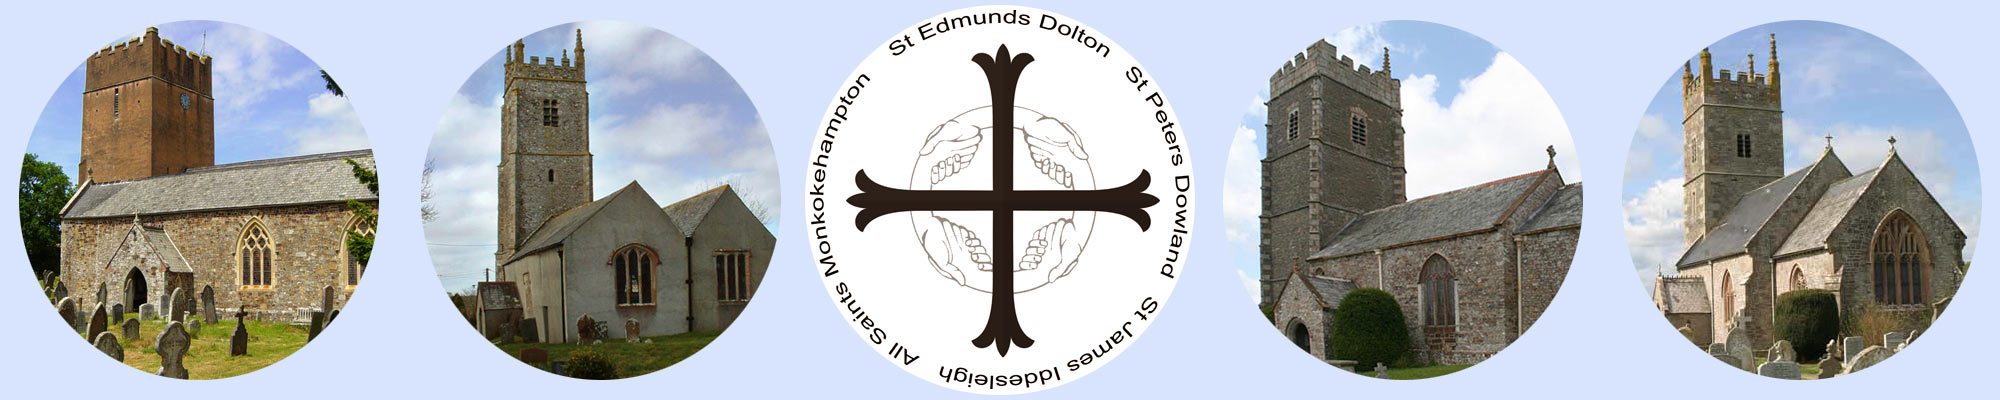 United benefice of Dolton, Dowland, Iddesleigh and Monkokehampton